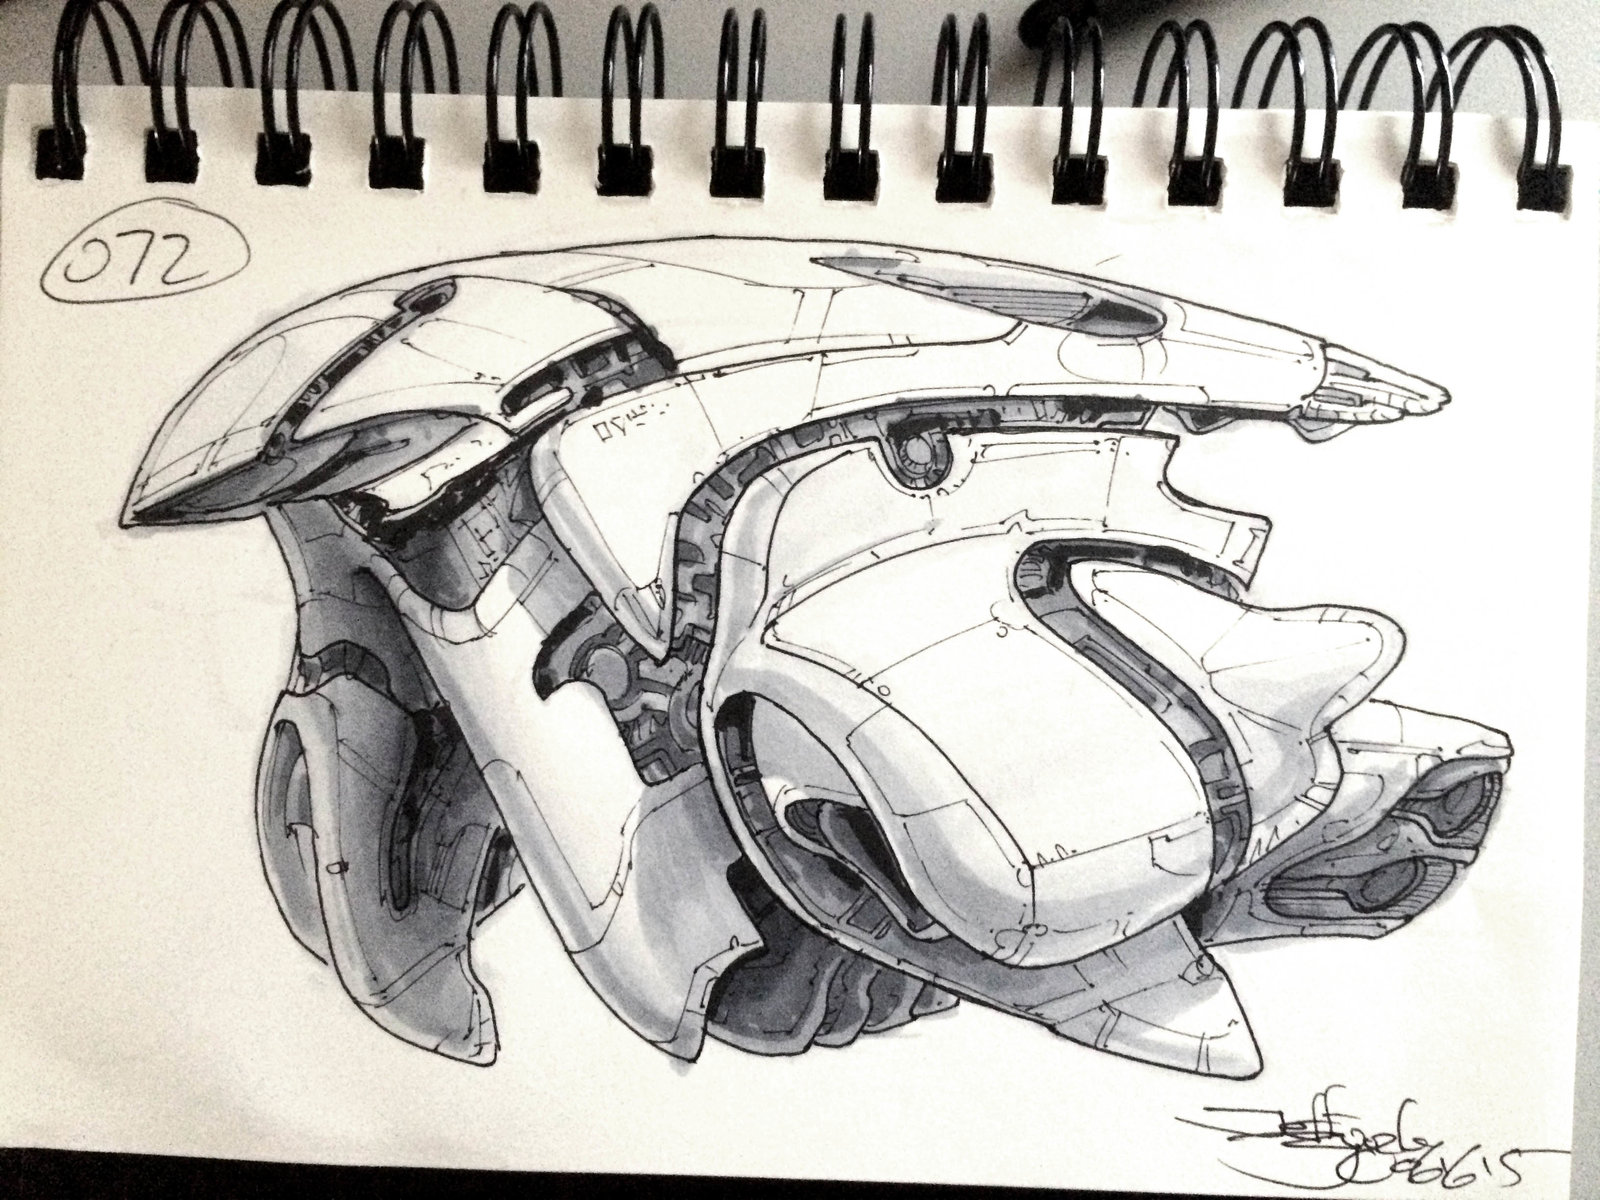 SpaceshipADay 072